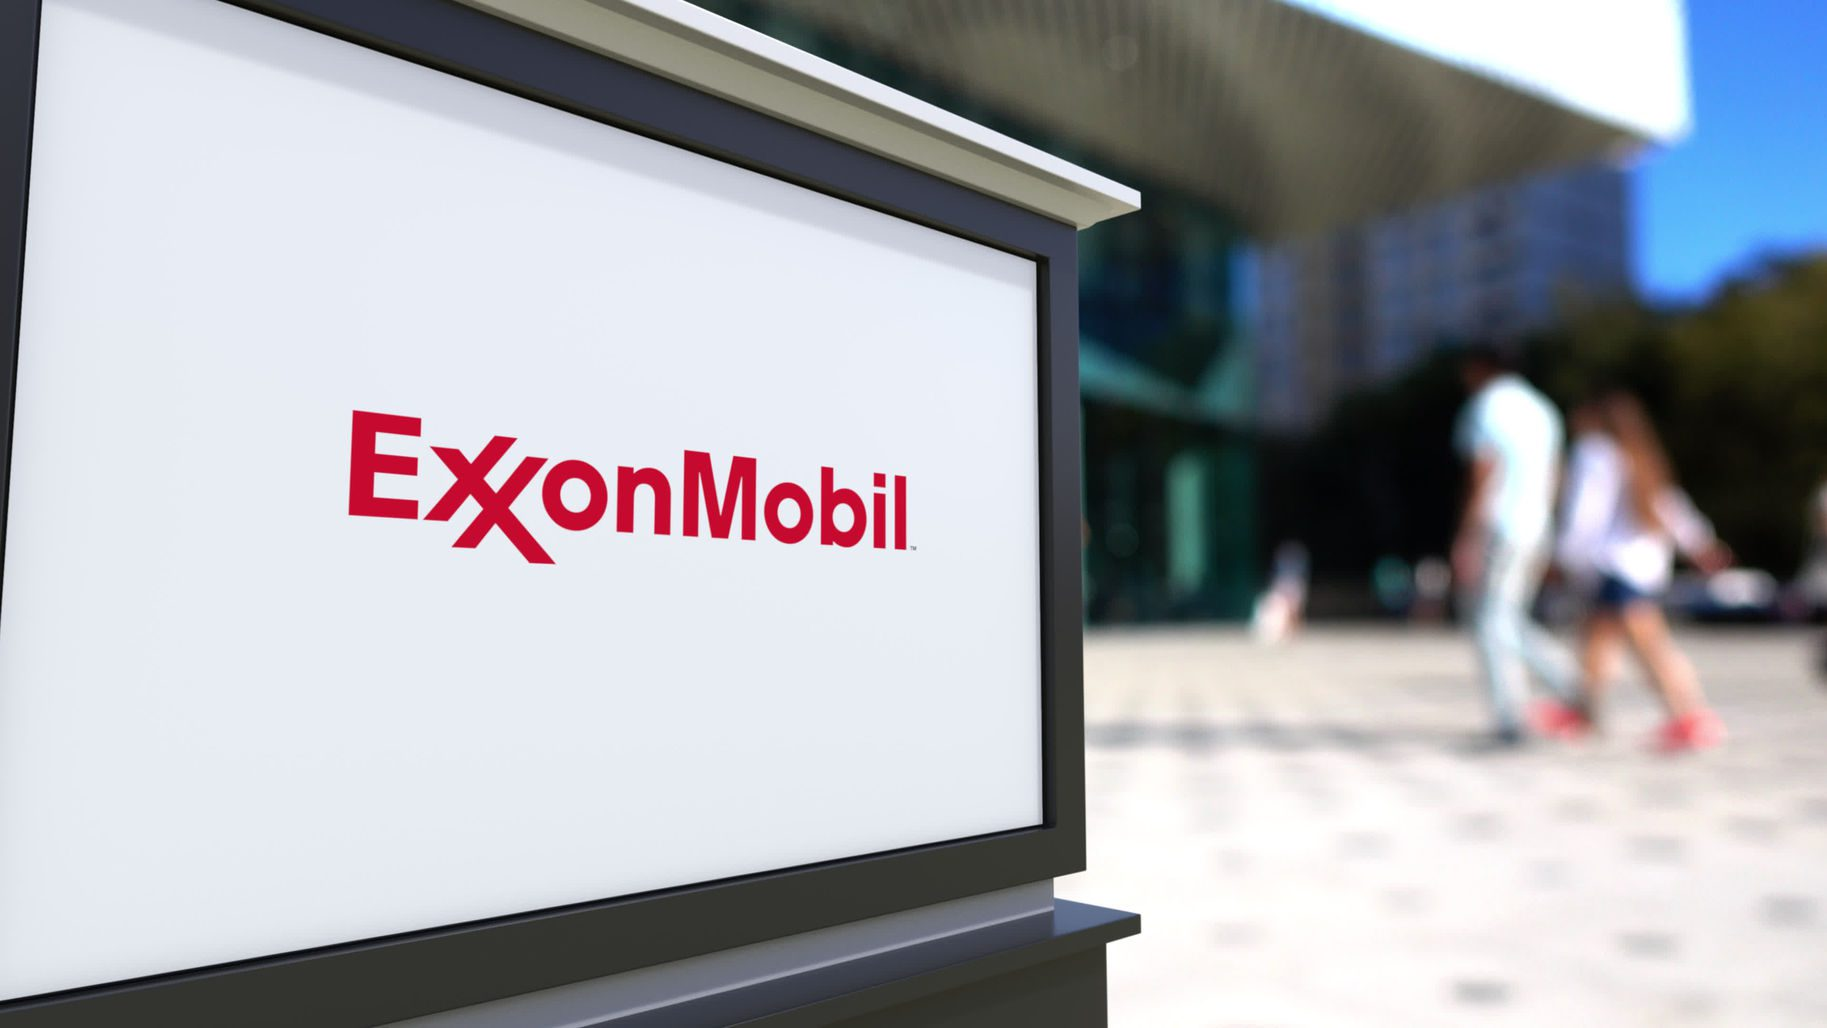 ExxonMobil Dethroned as the Number-One Ranked Energy Company: S&P Global Platts